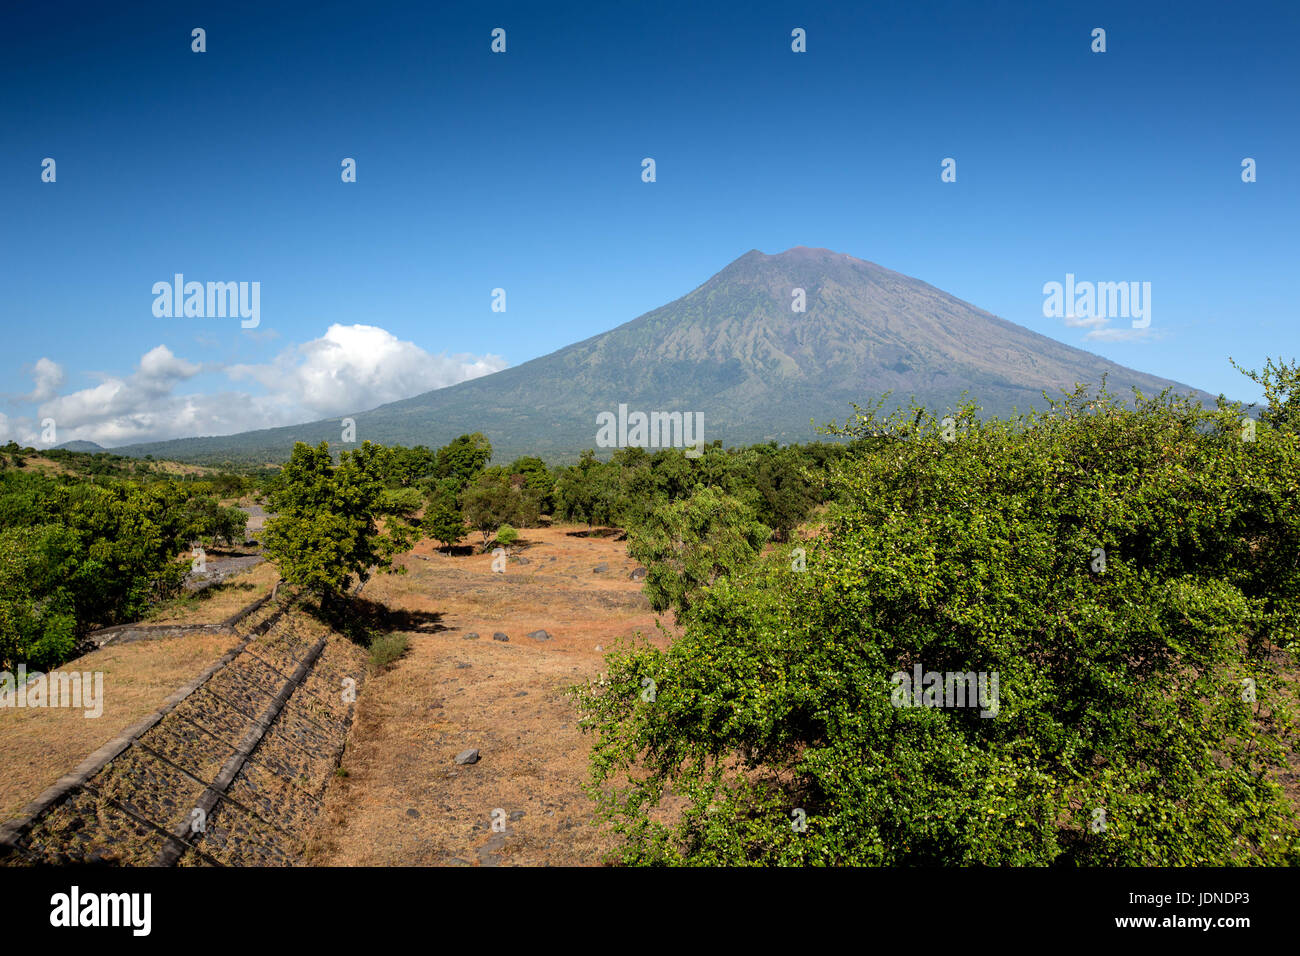 Mount Agung in Bali, Indonesia Near Ubud - Stock Image